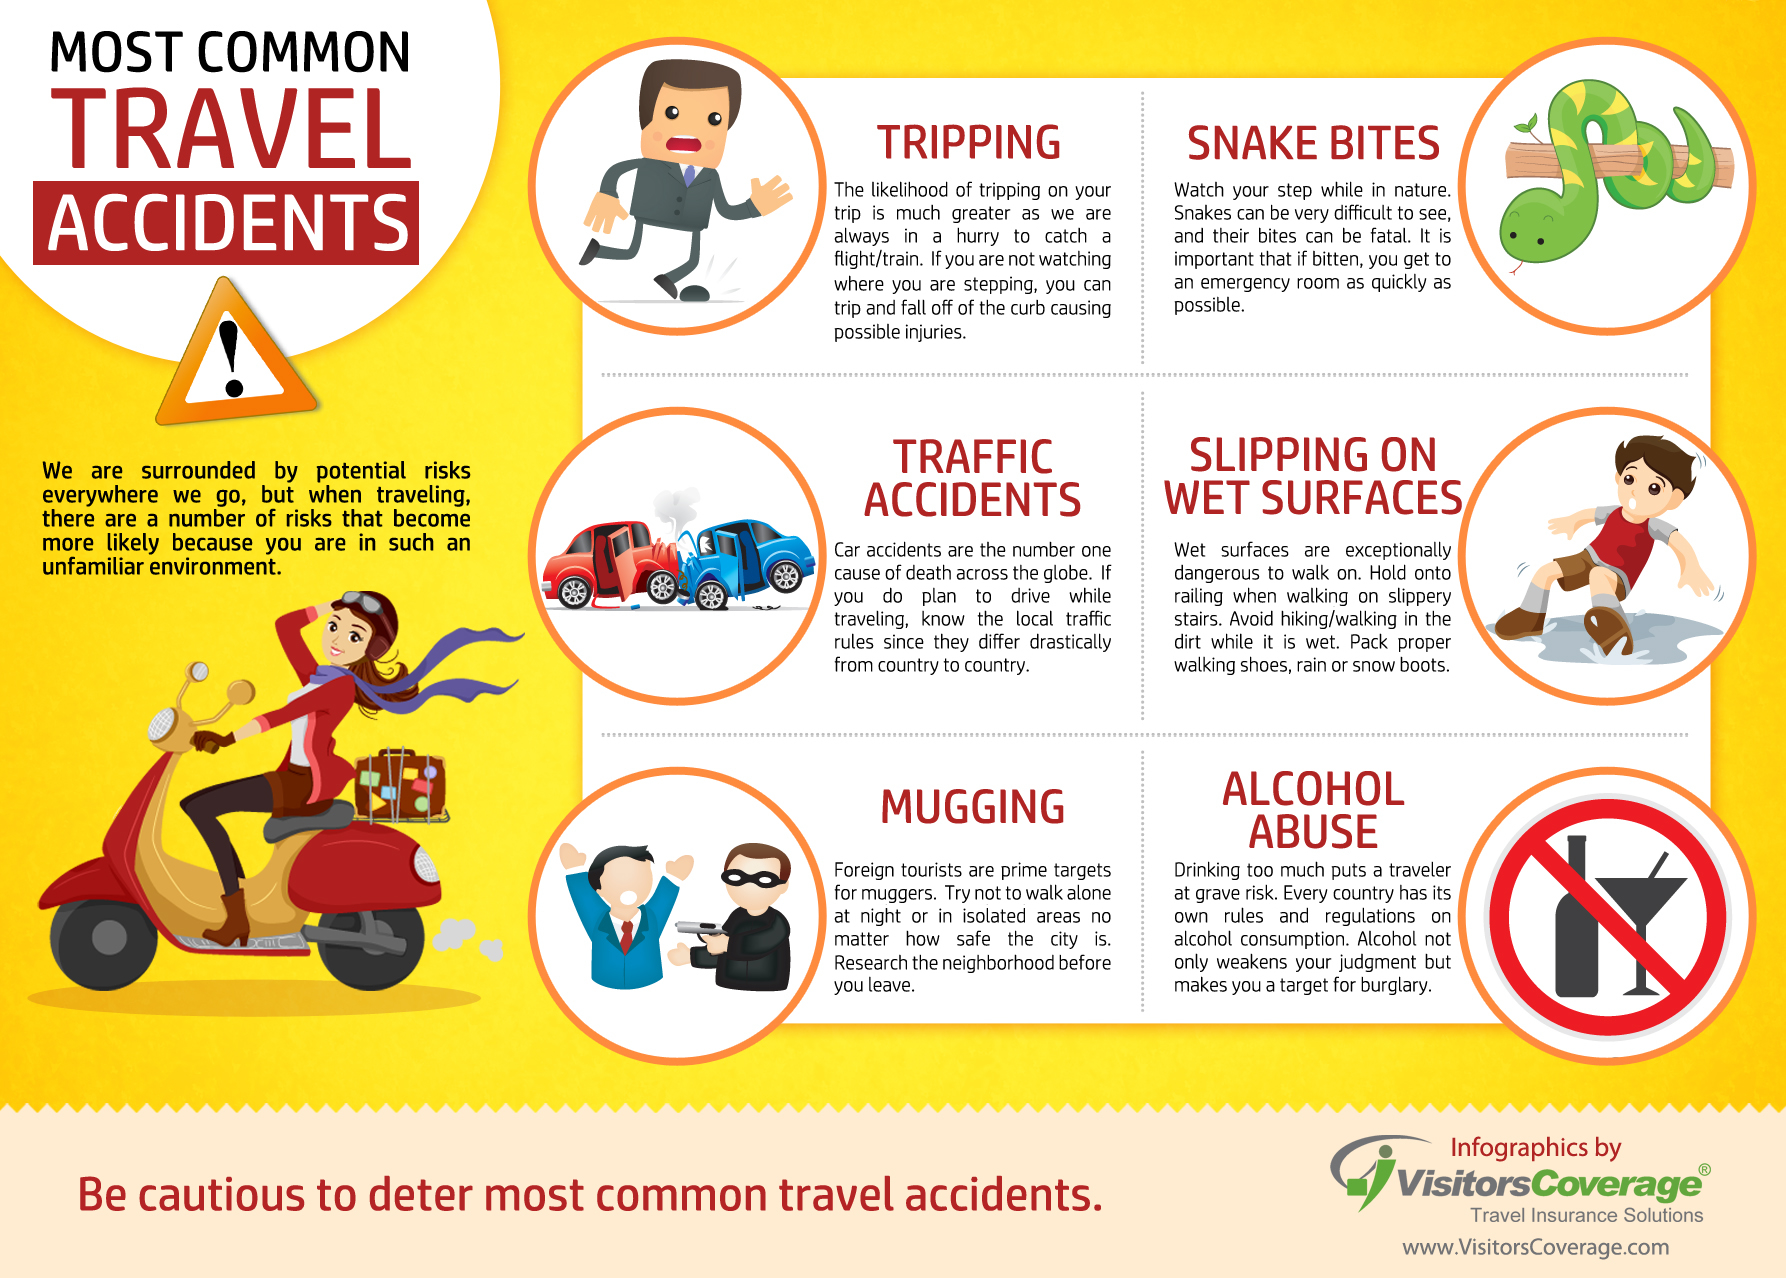 Most Common Travel Accidents